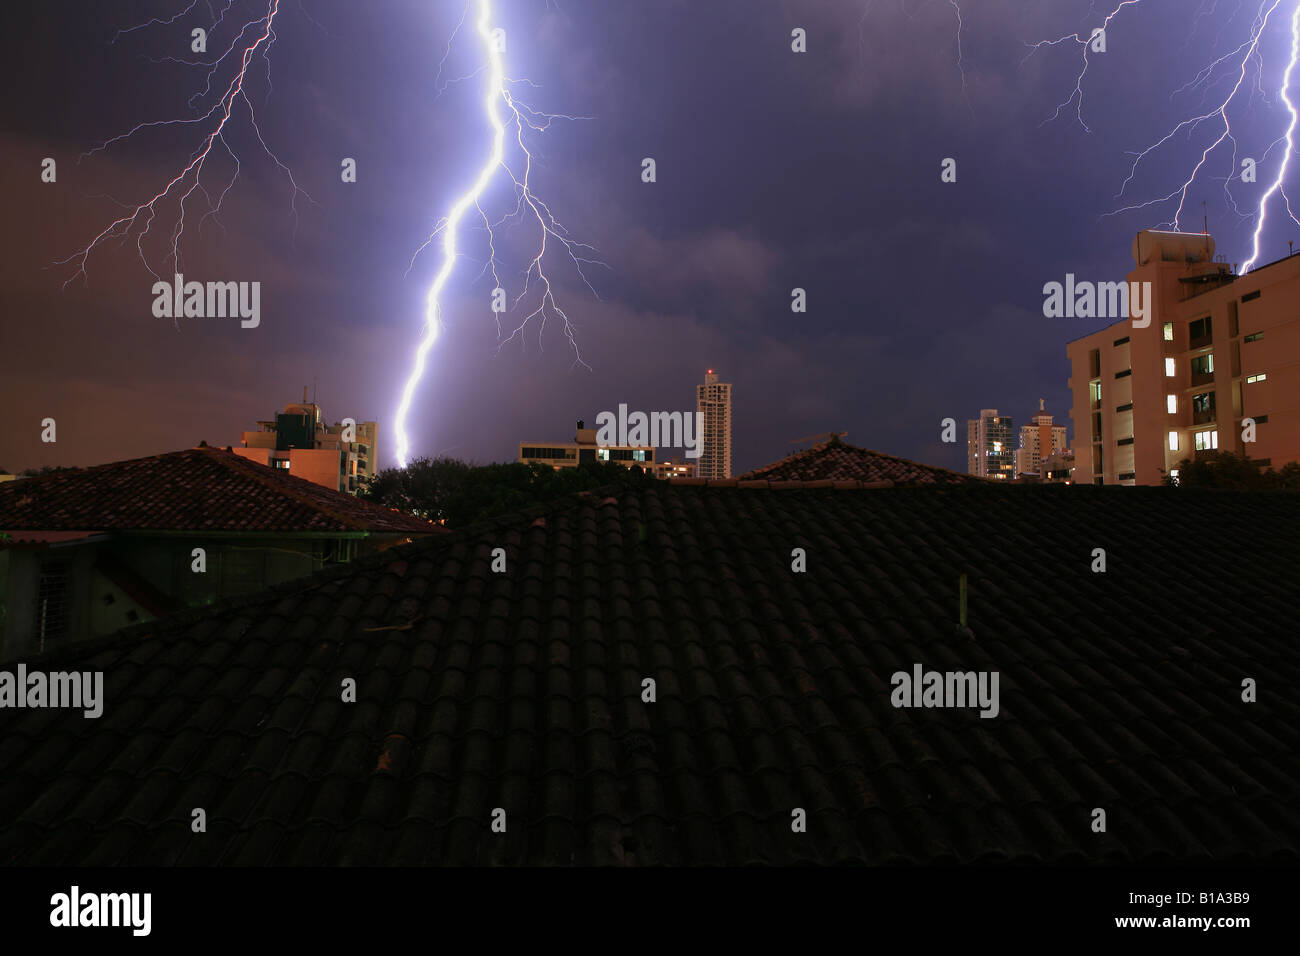 Thunderstorm and lightning in Panama city, Republic of Panama. - Stock Image